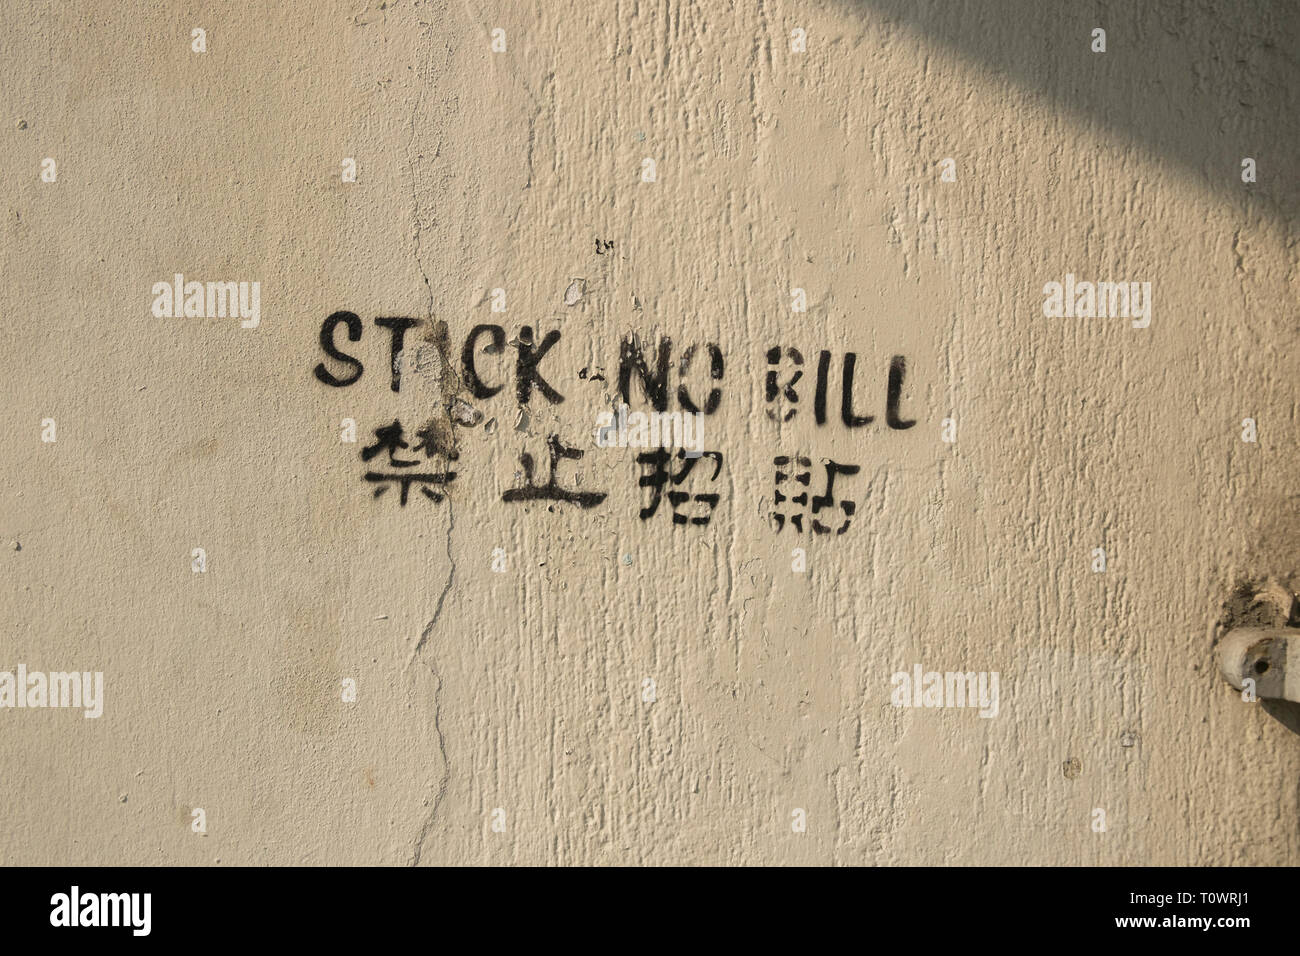 Stick No Bill, Post No Bill, Chinese letter sign on a wall in Kota Kinabalu, Sabah, Borneo, Malaysia. - Stock Image